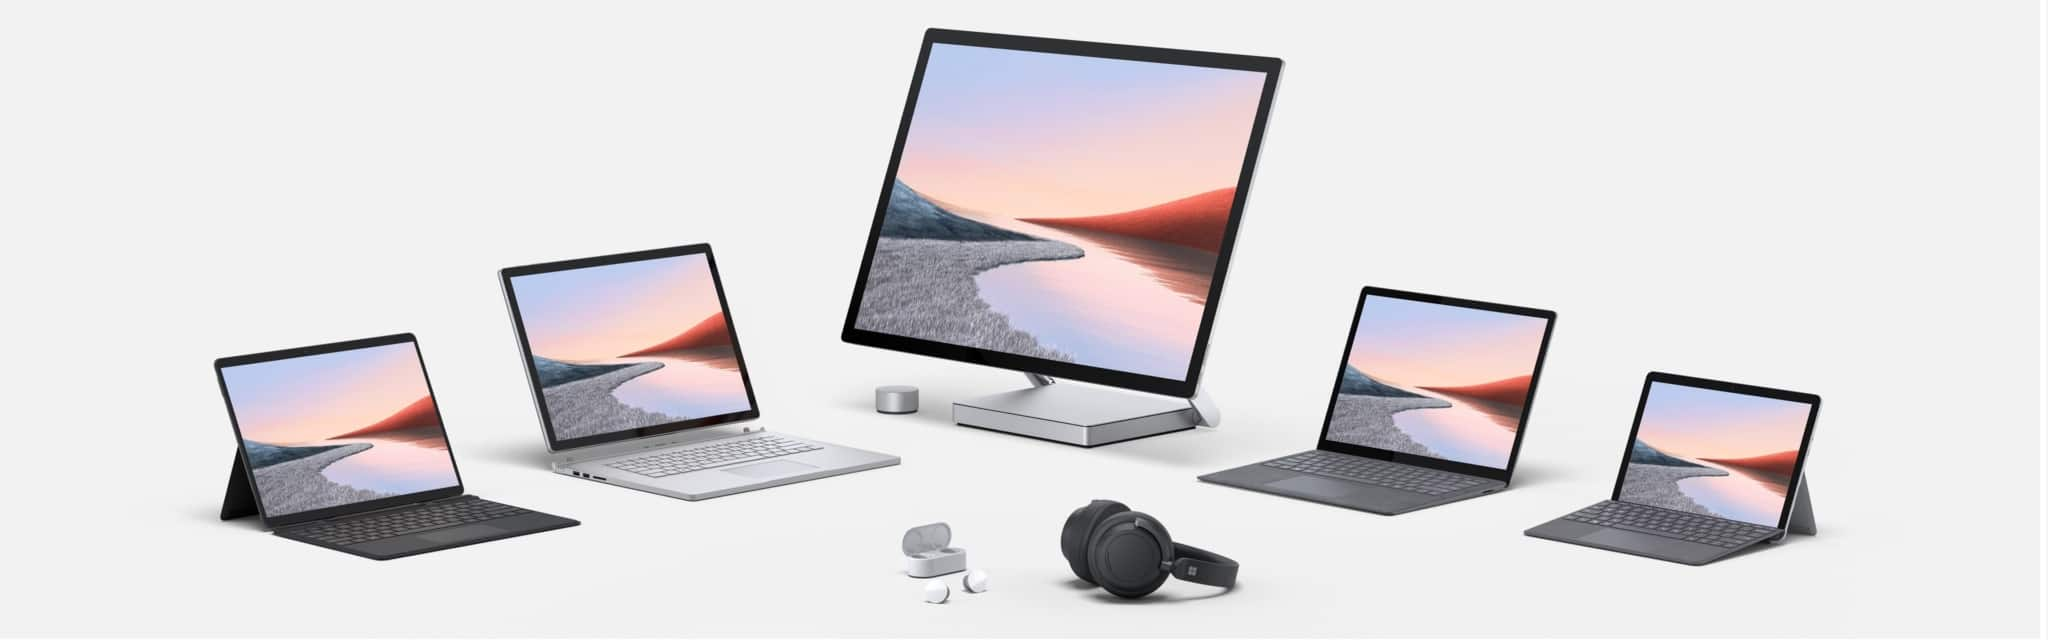 Egnetas.LT Microsoft 2020 Surface Family